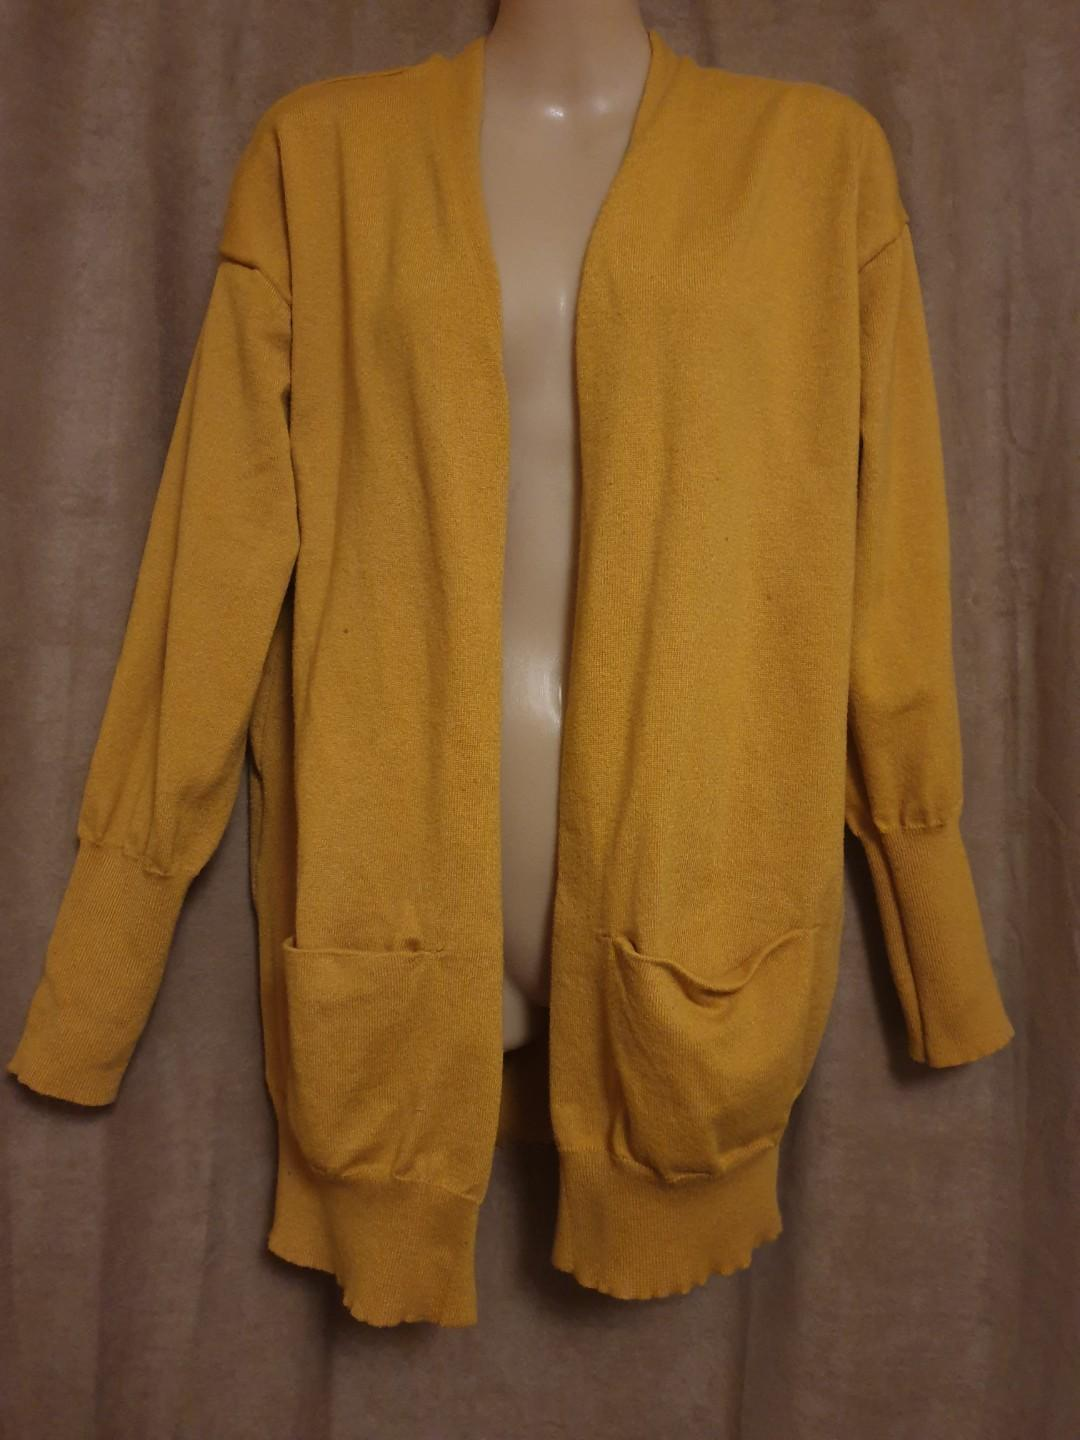 Mustard Cardigan Size Small Good Preloved Condition